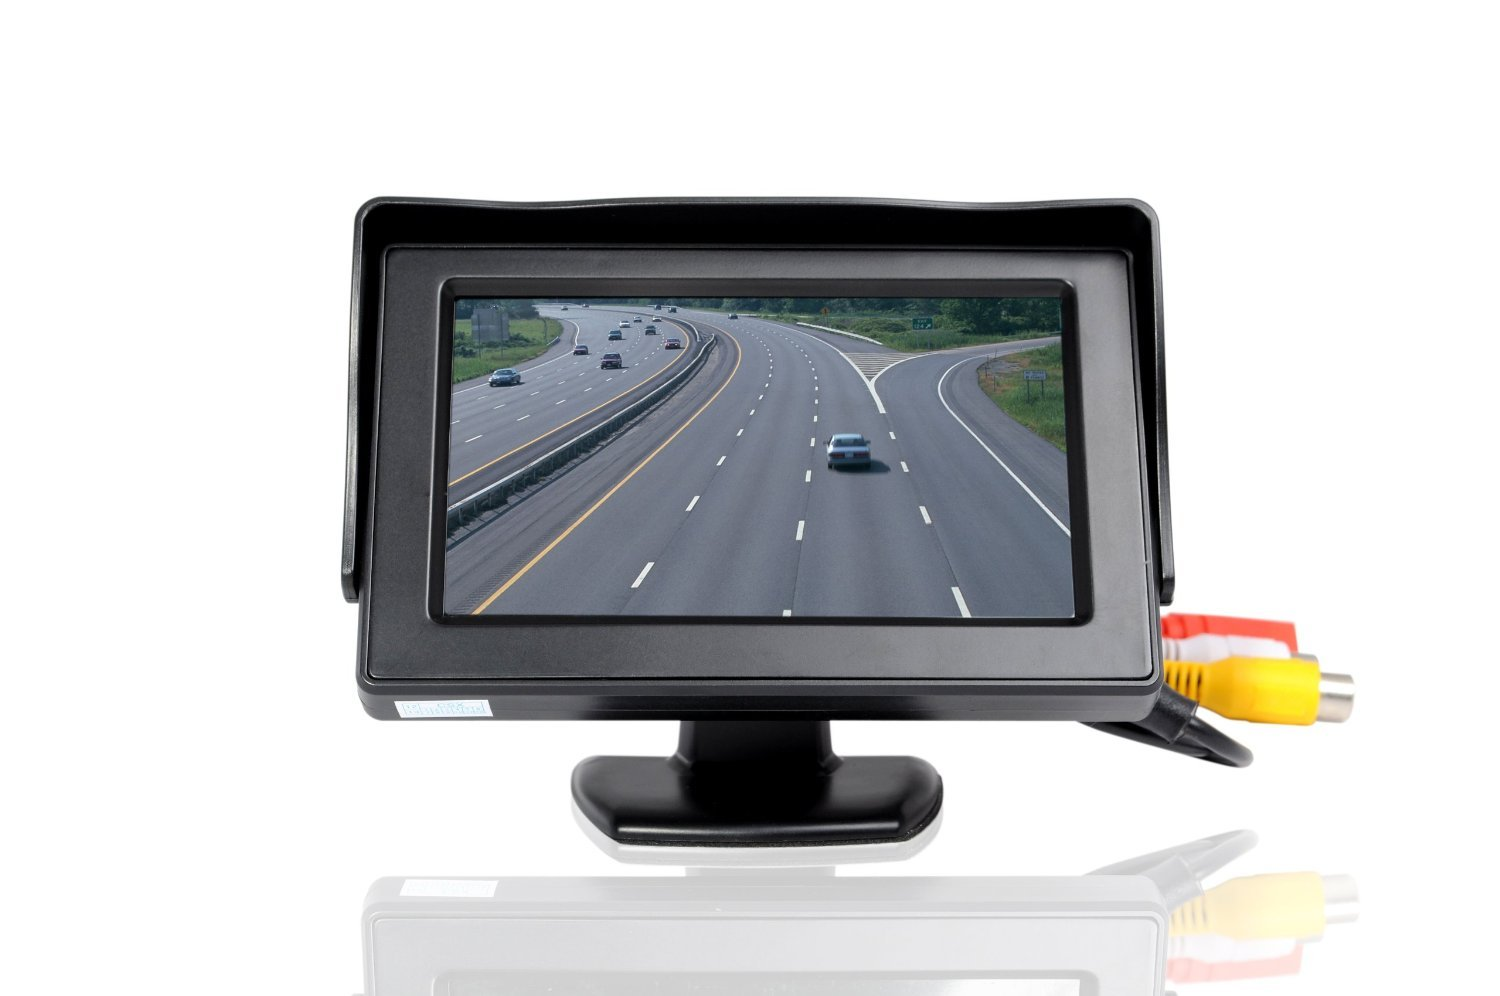 ATian 4.3 Inches Car Monitor TFT LCD Color Display Car Rear View Monitor Screen with 2 AV Input for Car Rear View Cameras, with Dash Mounting Stand and 3M Sticker, Fit for Almost All The Vehicles by ATian